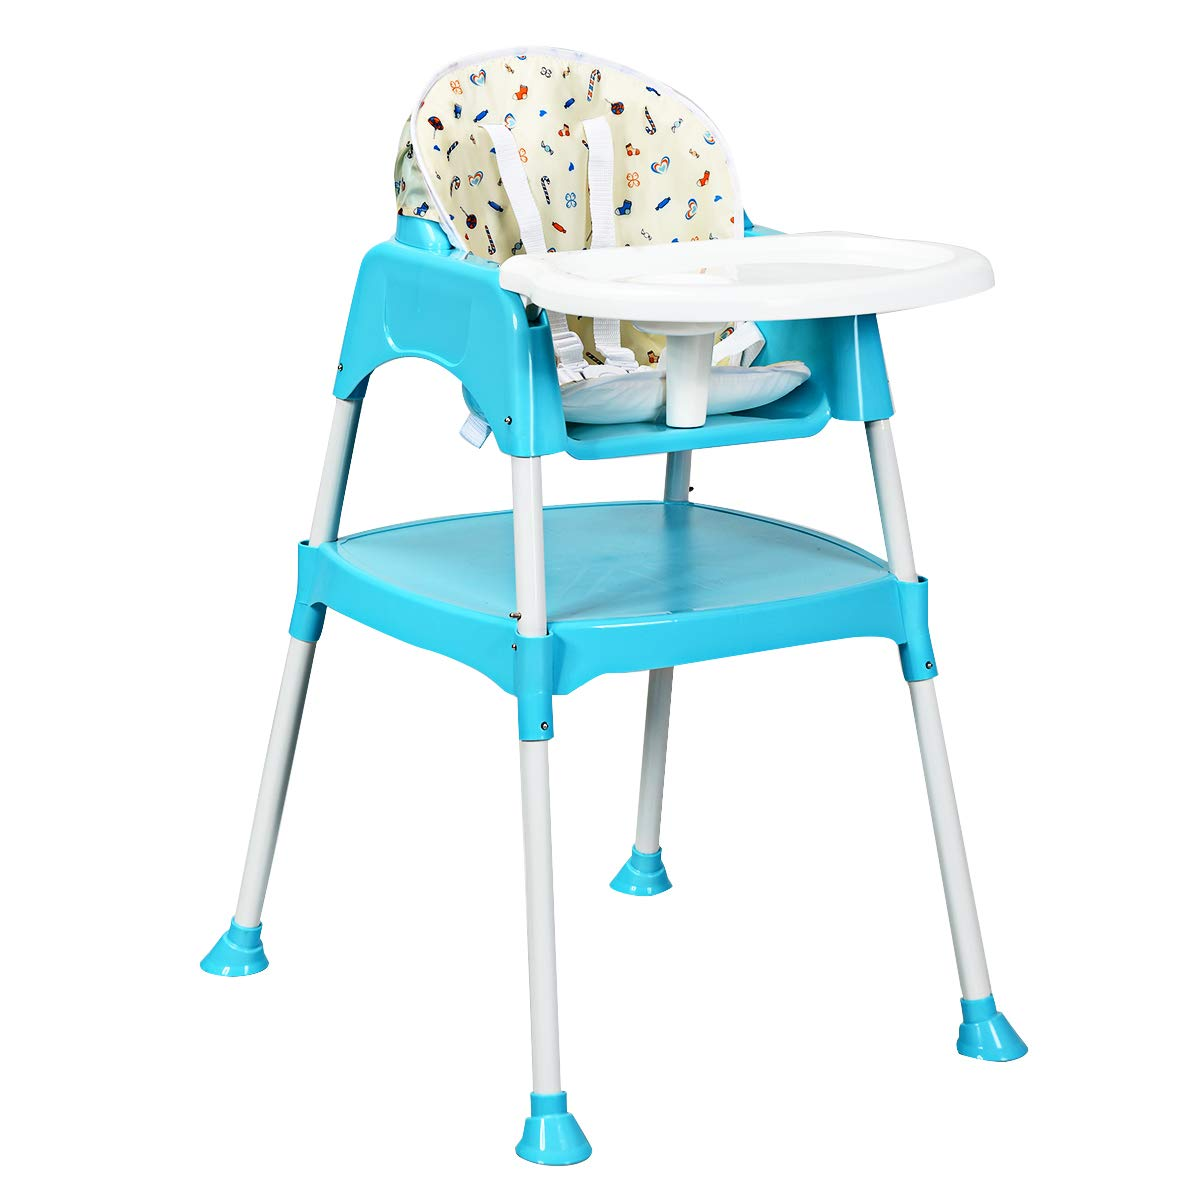 Costzon Convertible High Chair, 4 in 1 Table and Chair Set, Snacker High Chair Seat, Toddler Booster Furniture, Baby Feeding with Tray & Cup Holder (Blue)